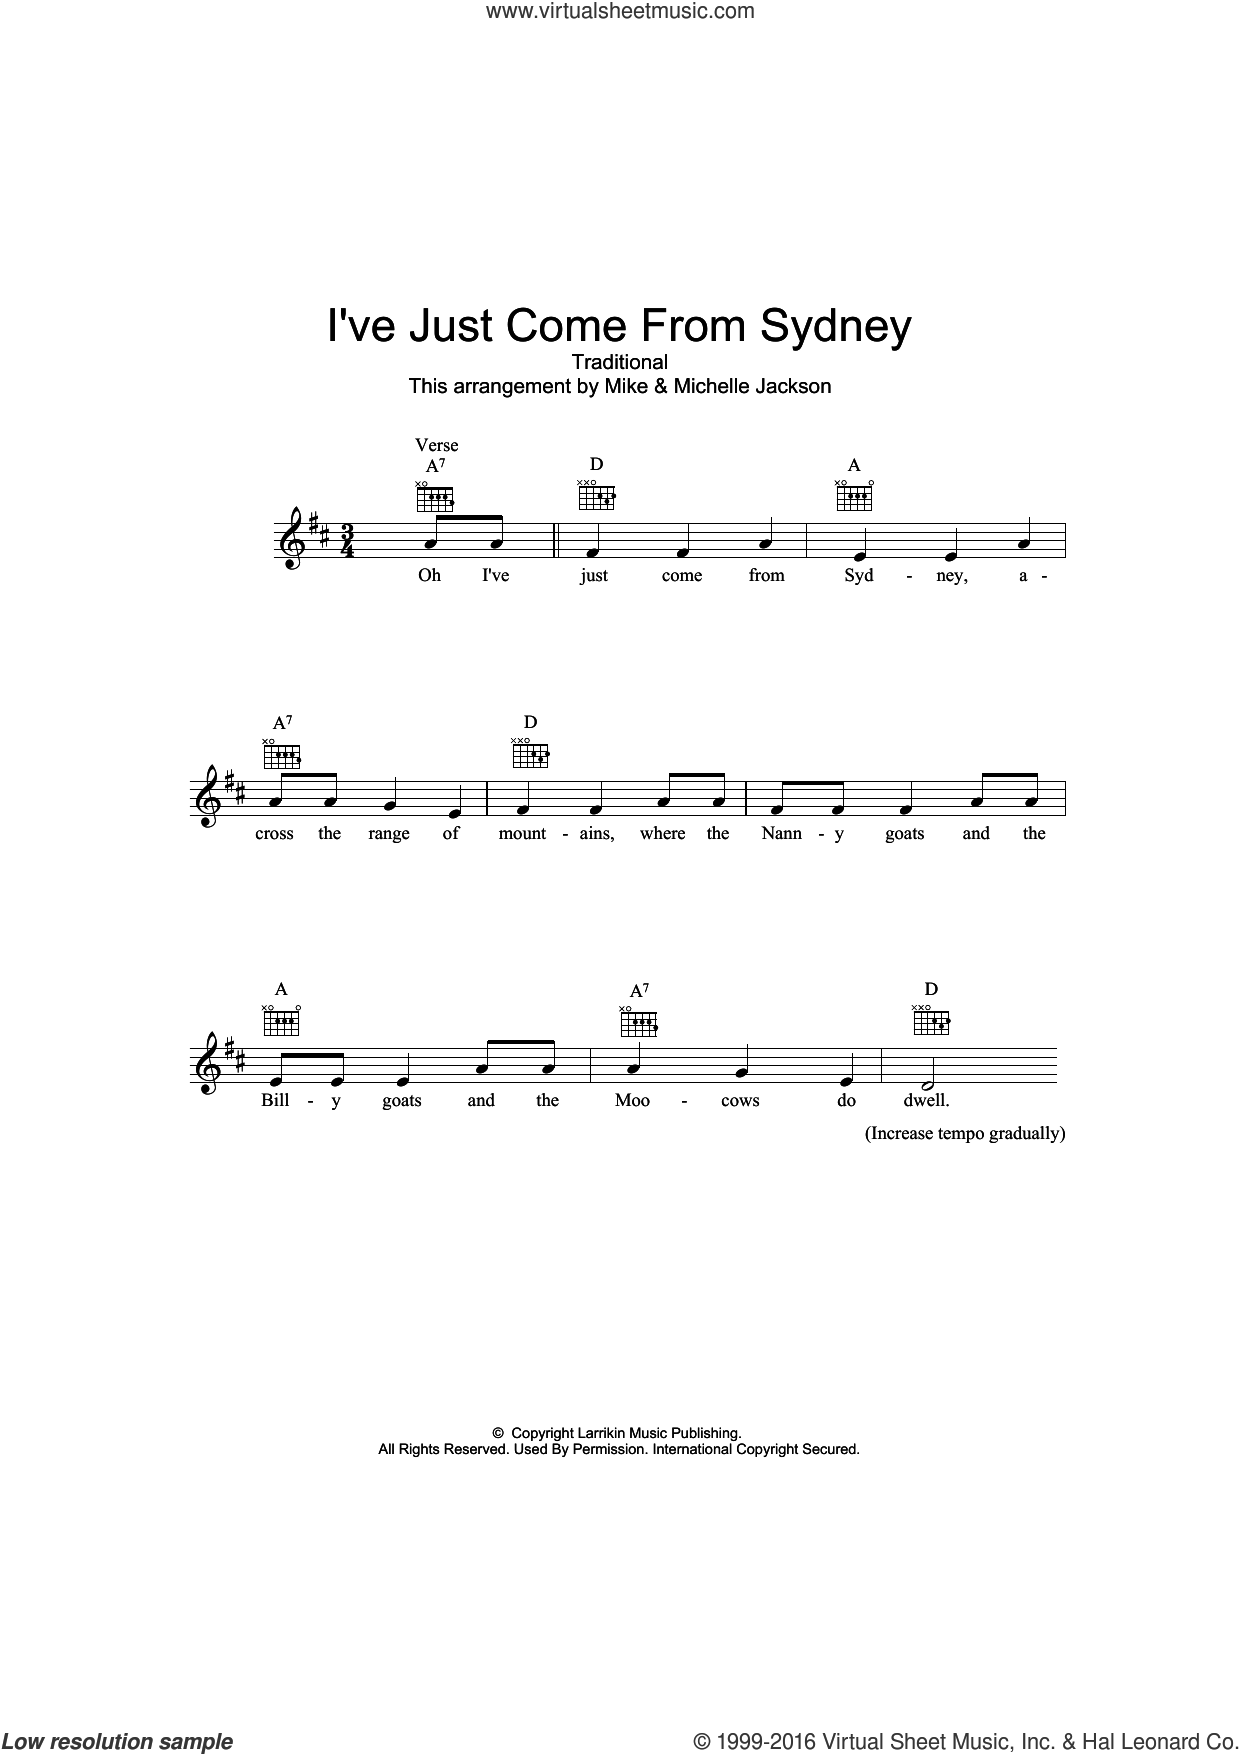 I've Just Come From Sydney sheet music for voice and other instruments (fake book), intermediate skill level